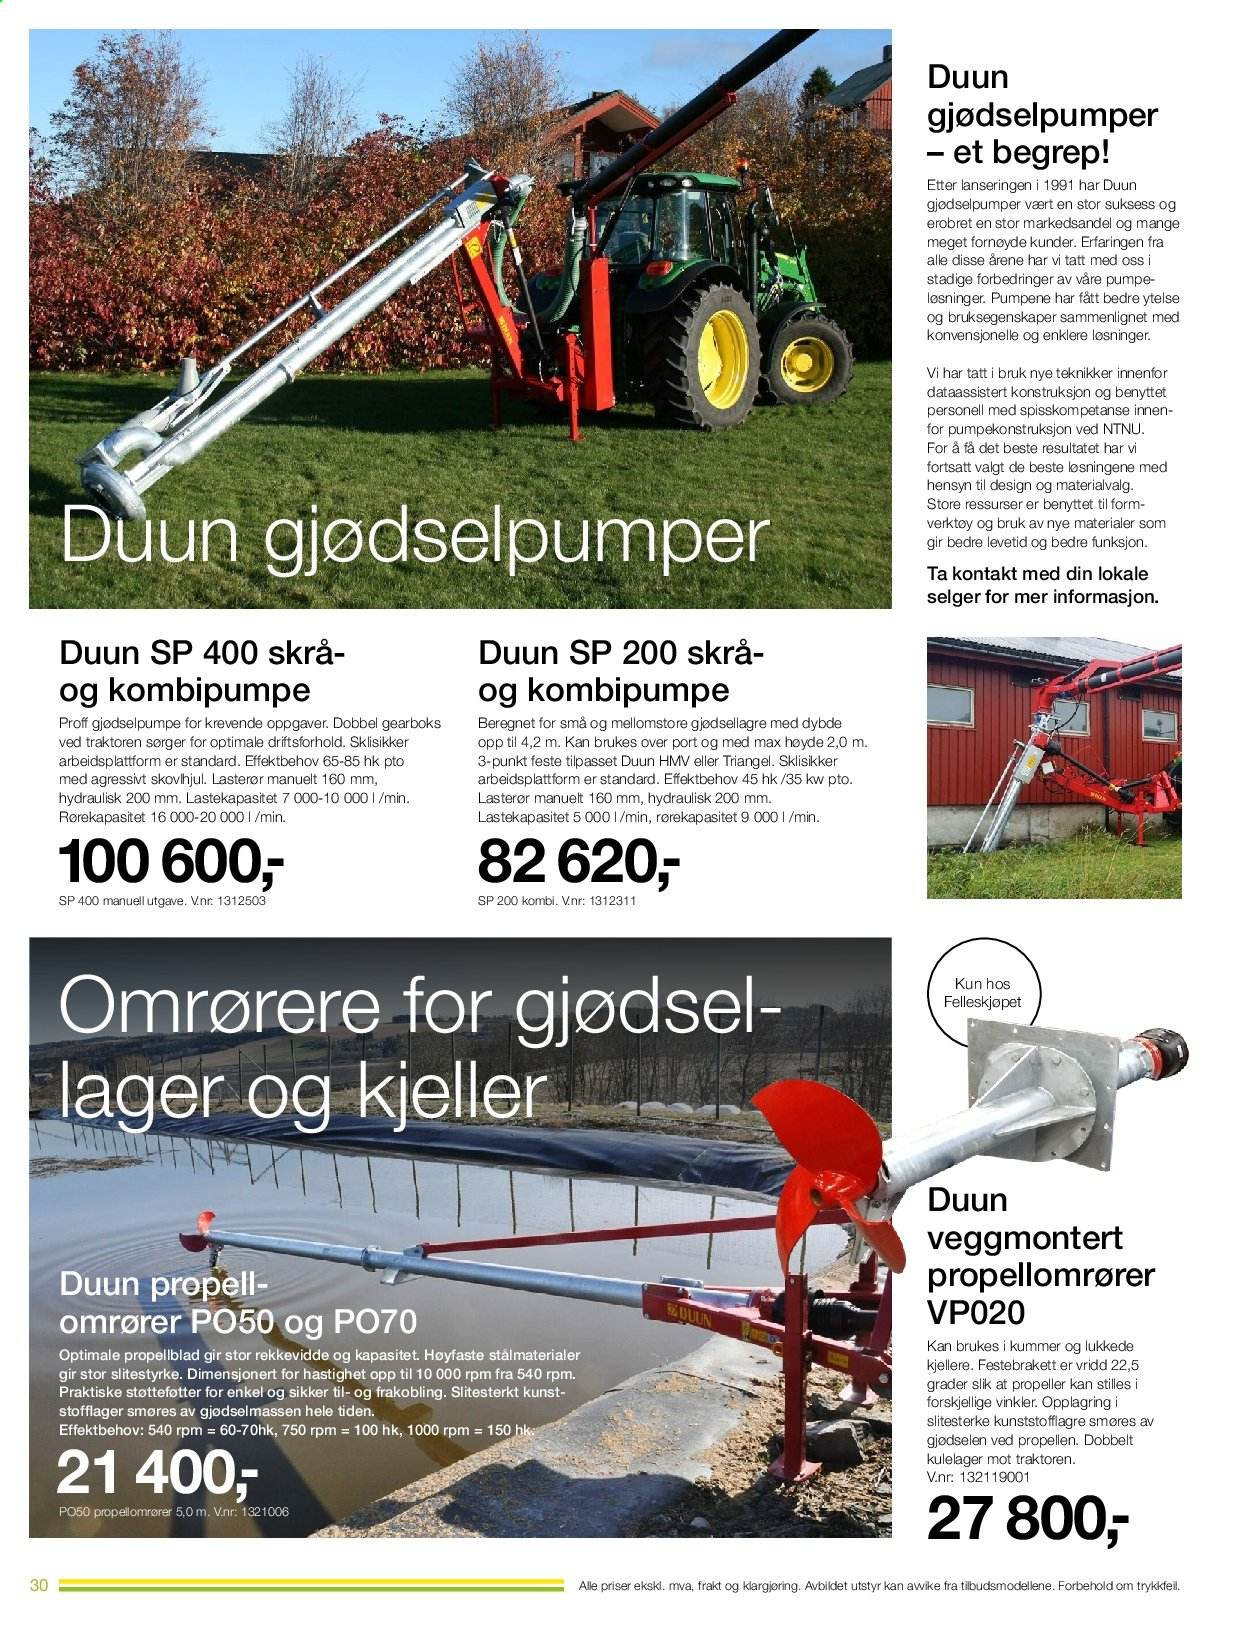 Kundeavis Felleskjøpet - 06.05.2019 - 19.05.2019. Side 30.